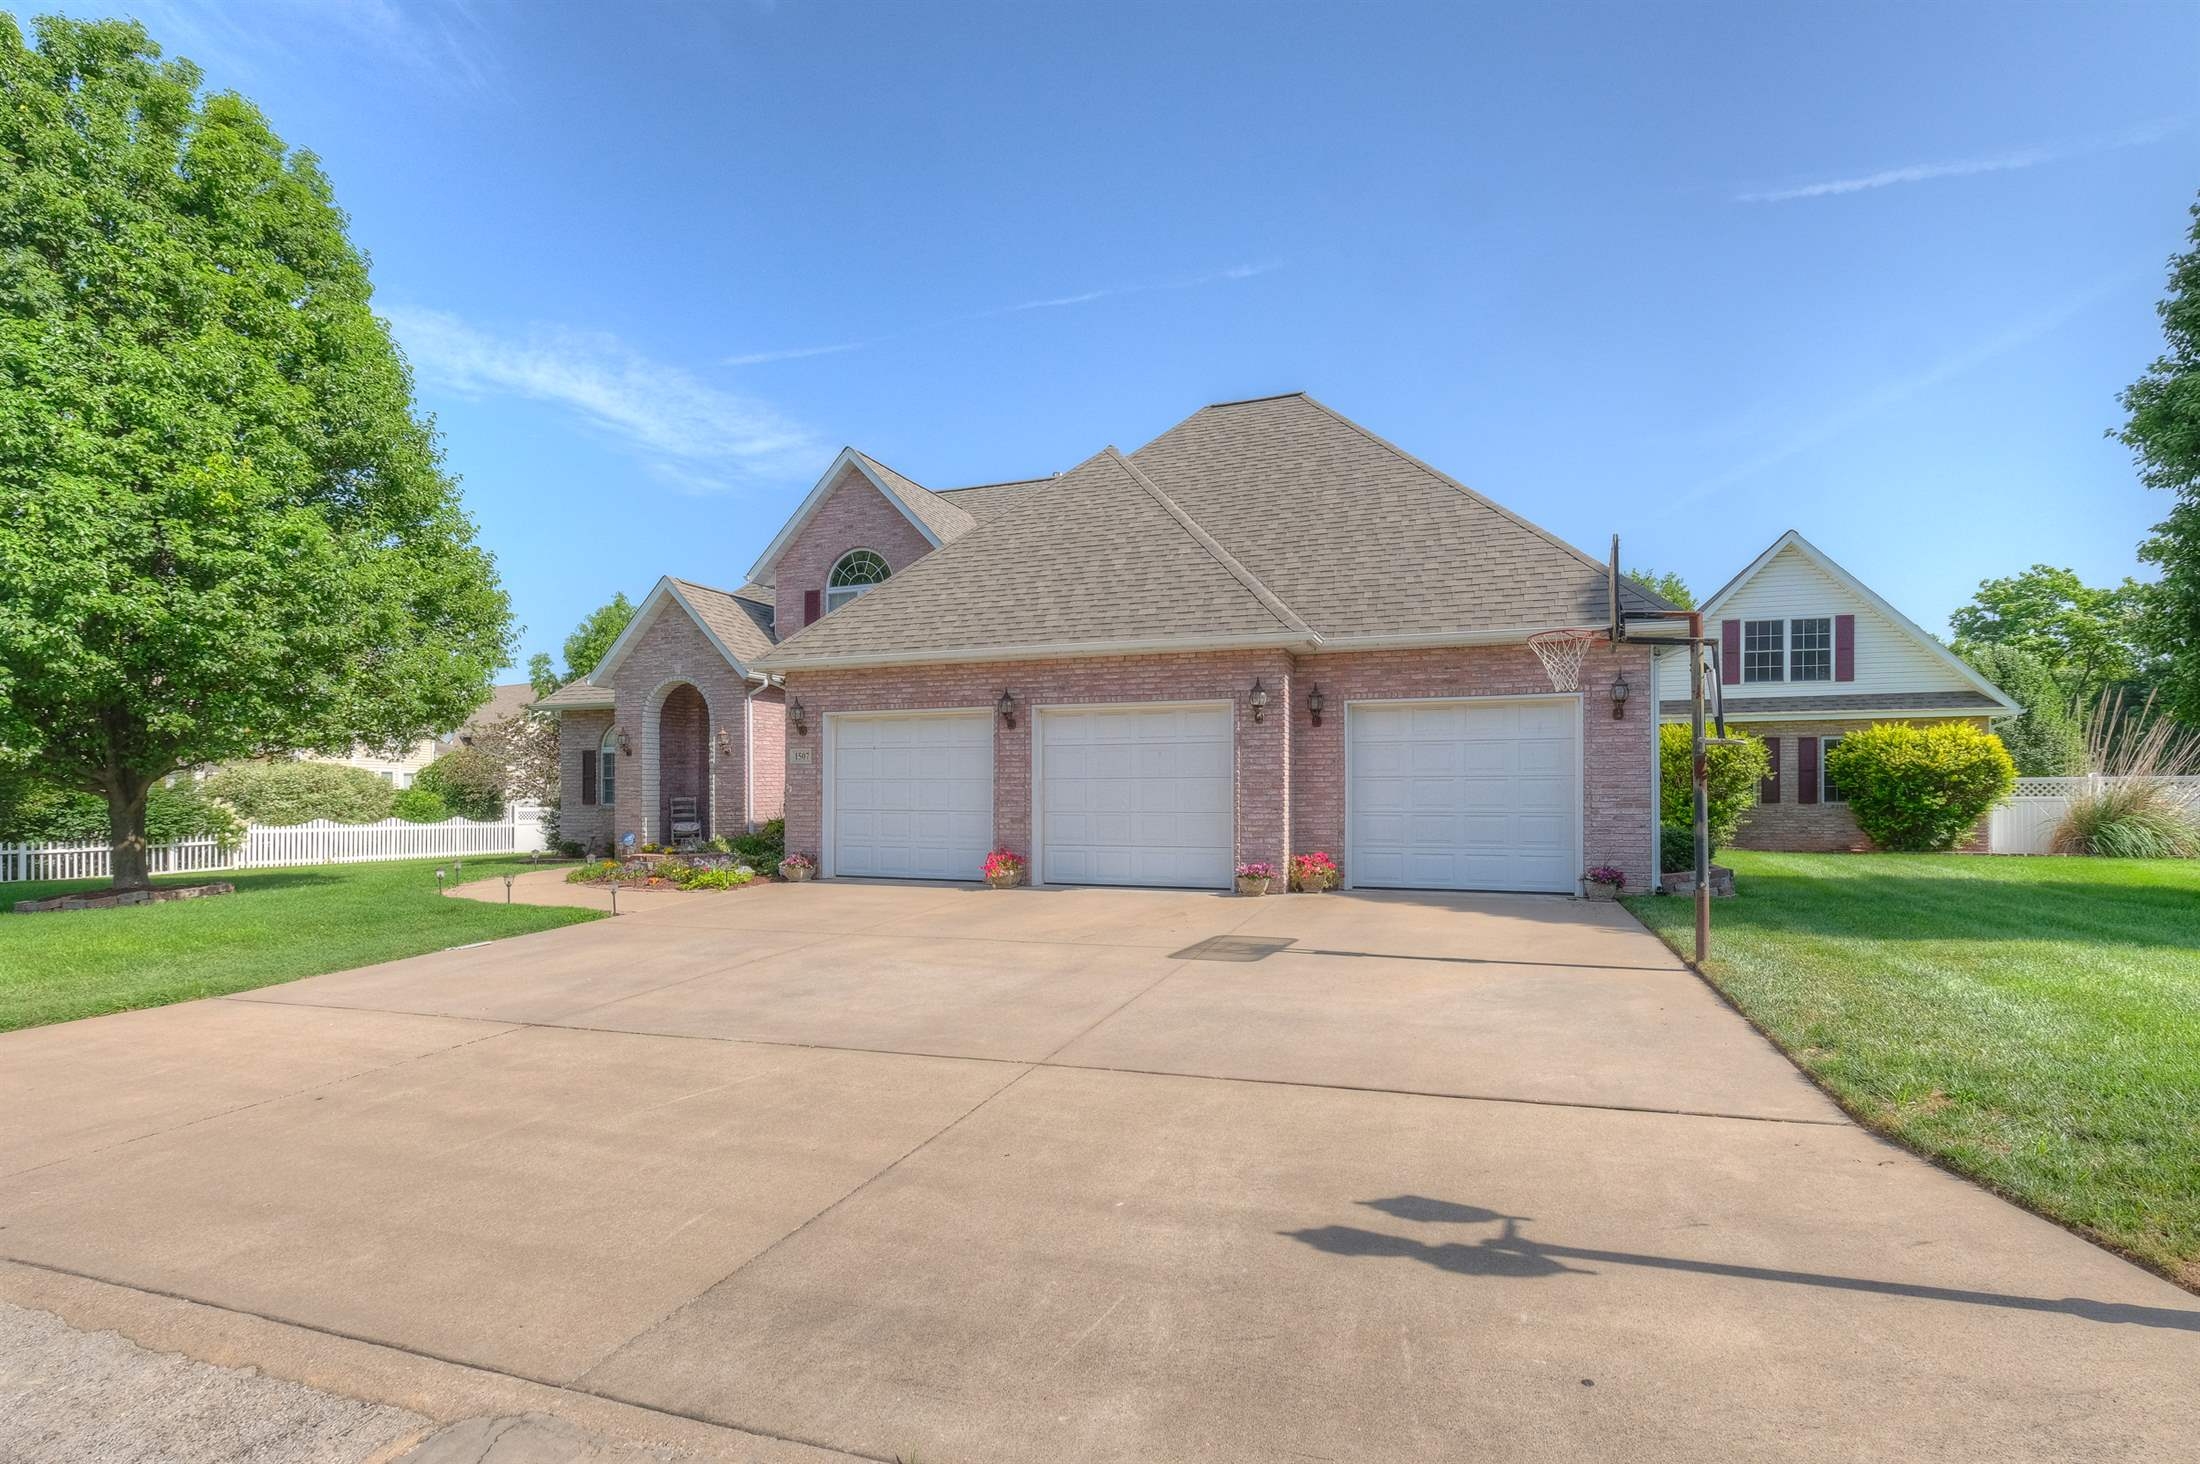 1507 Shawn Drive, Webb City, MO 64870